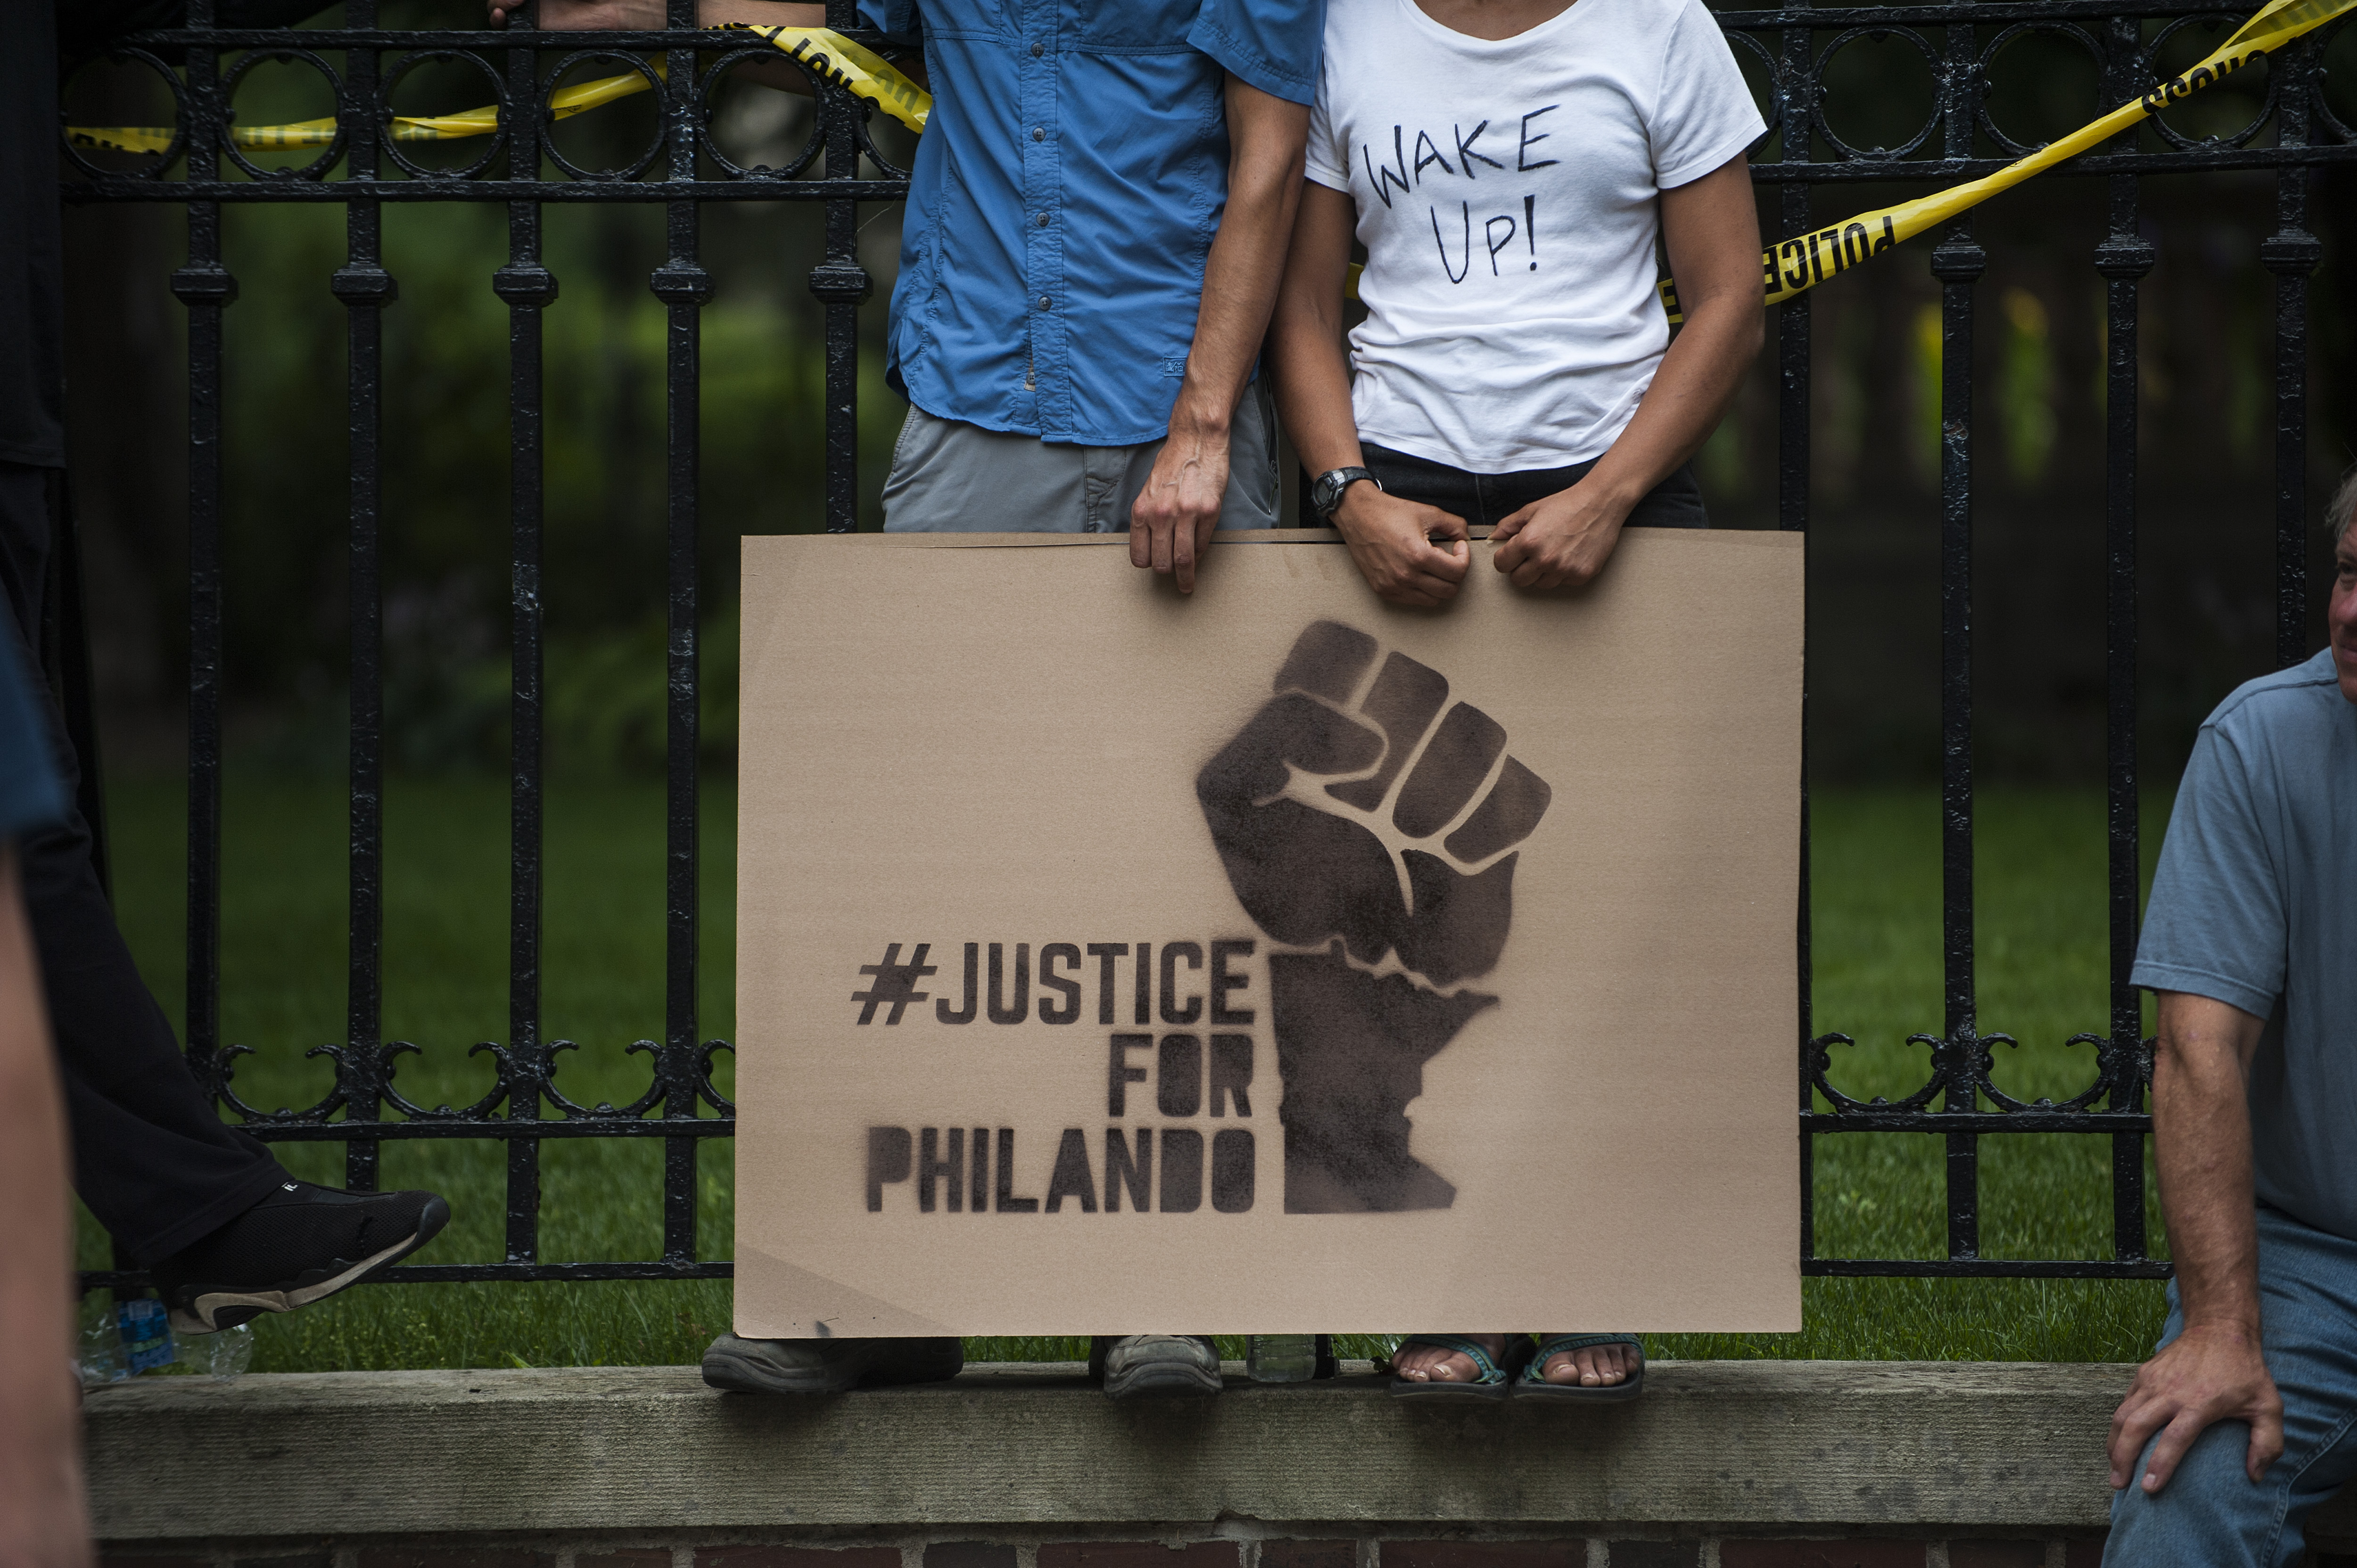 A couple hold a sign protesting the killing of Philando Castile outside the Governor's Mansion on July 7, 2016 in St. Paul, Minnesota.